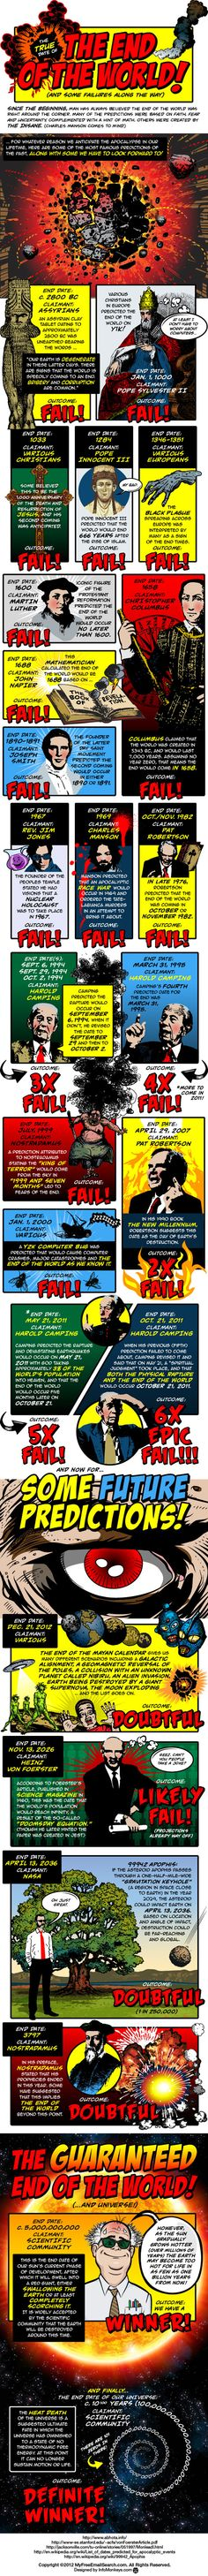 SO is the world going to end any time soon ? A question that has been answered hundreds of times, yet as we are all still very much alive I guess no one has been right so far. The creative guys over at InfoMoneys (who by the way have one of the best websites I have seen for ages) have made this great infographic showing all the failed answers, plus a few predictions…